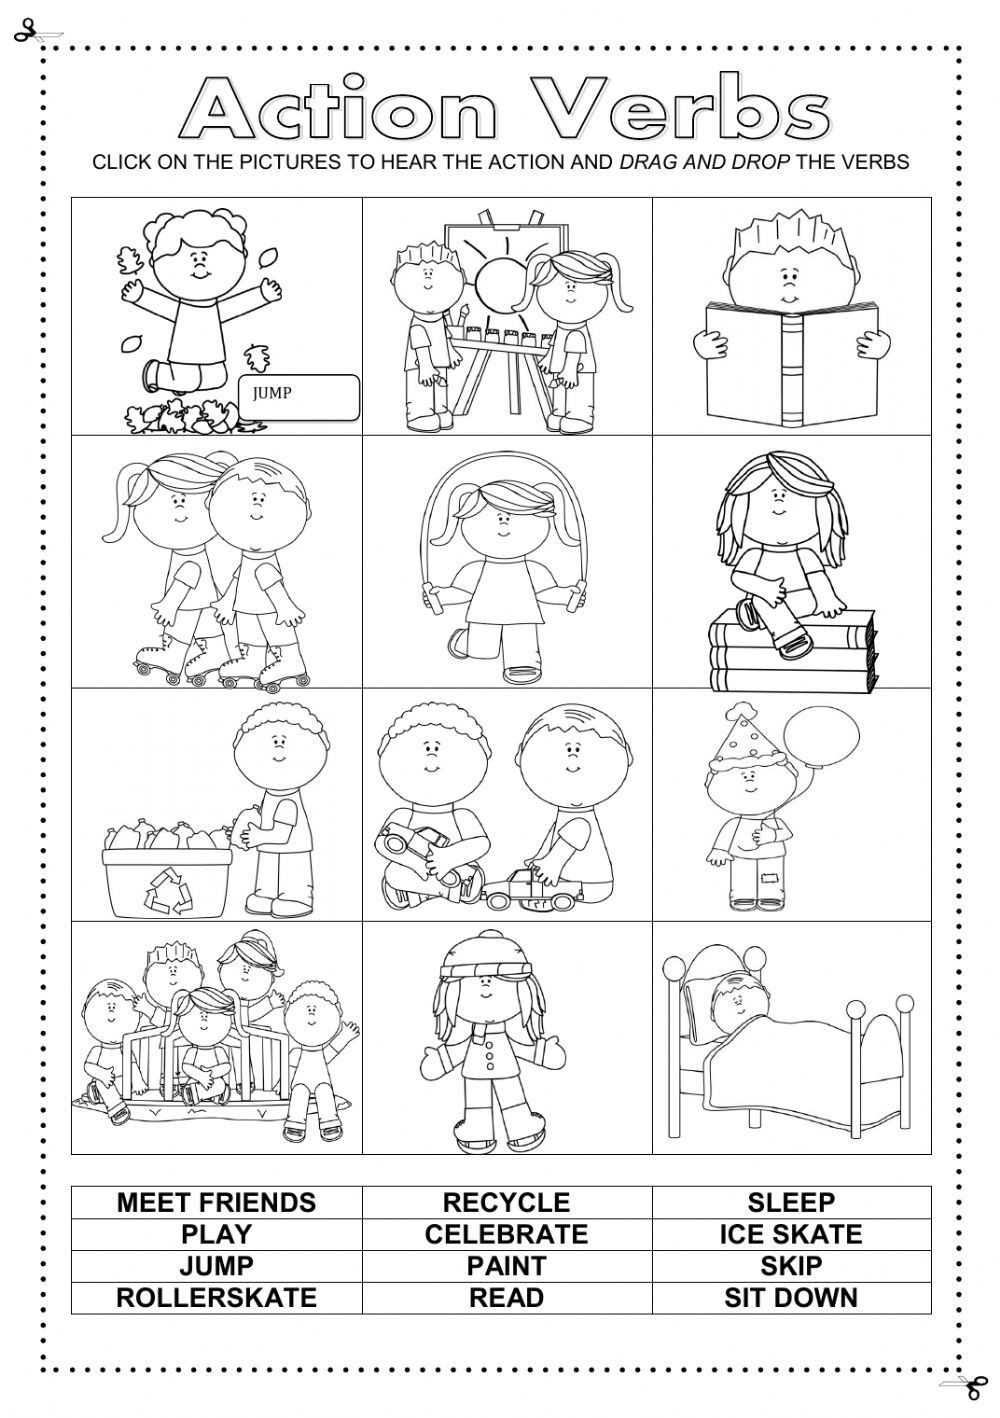 Verbs Worksheets for Middle School Action Verbs Interactive and Able Worksheet Check